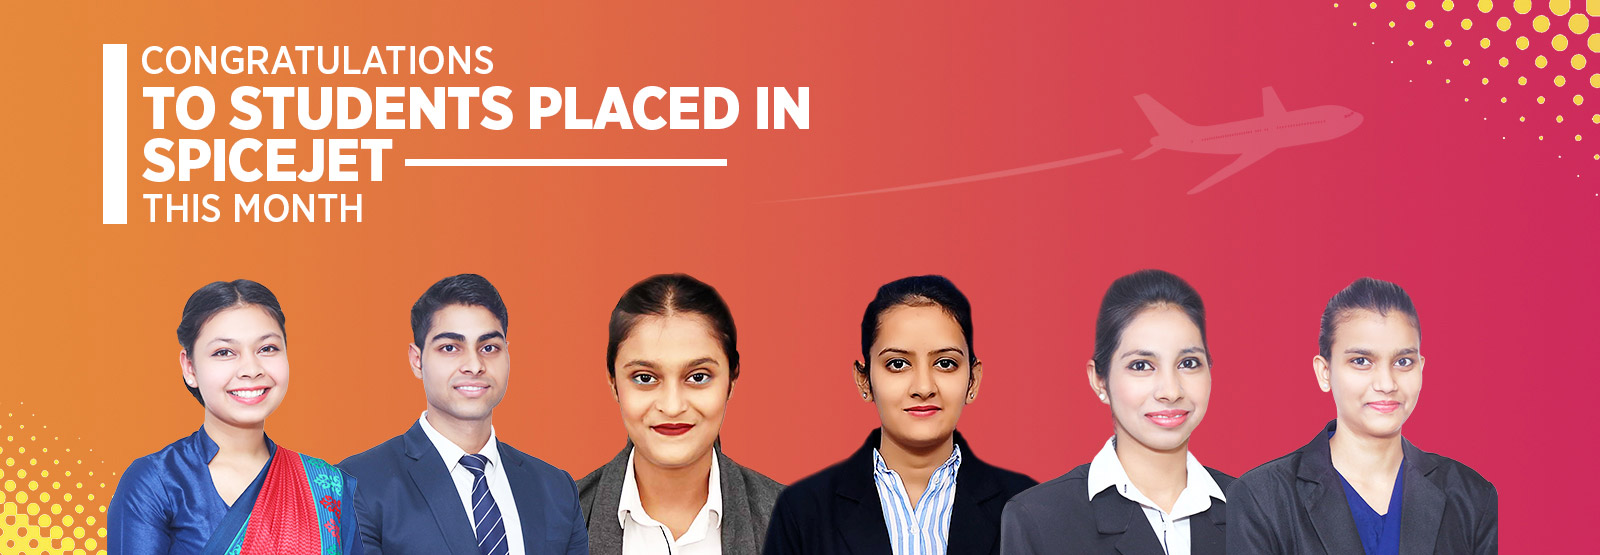 Congratulation to our students placed in SpiceJet - Skylark Institute